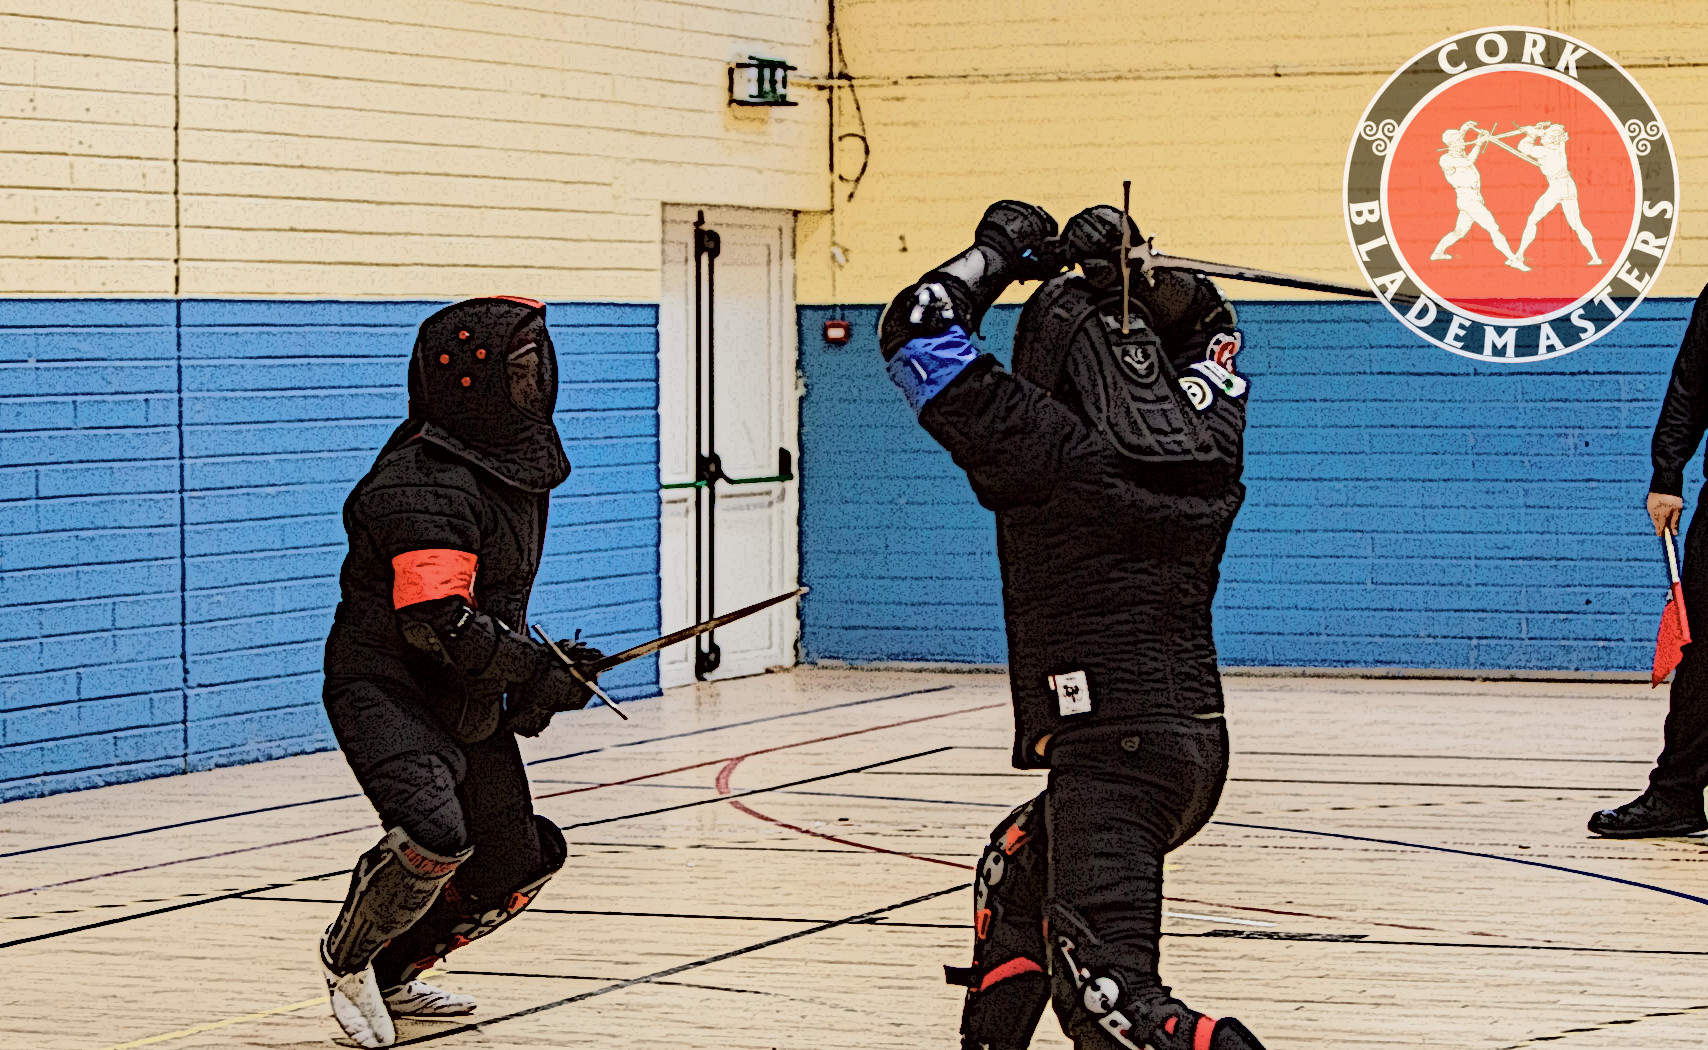 Blademasters League: Longsword – Sun 08/12/2019